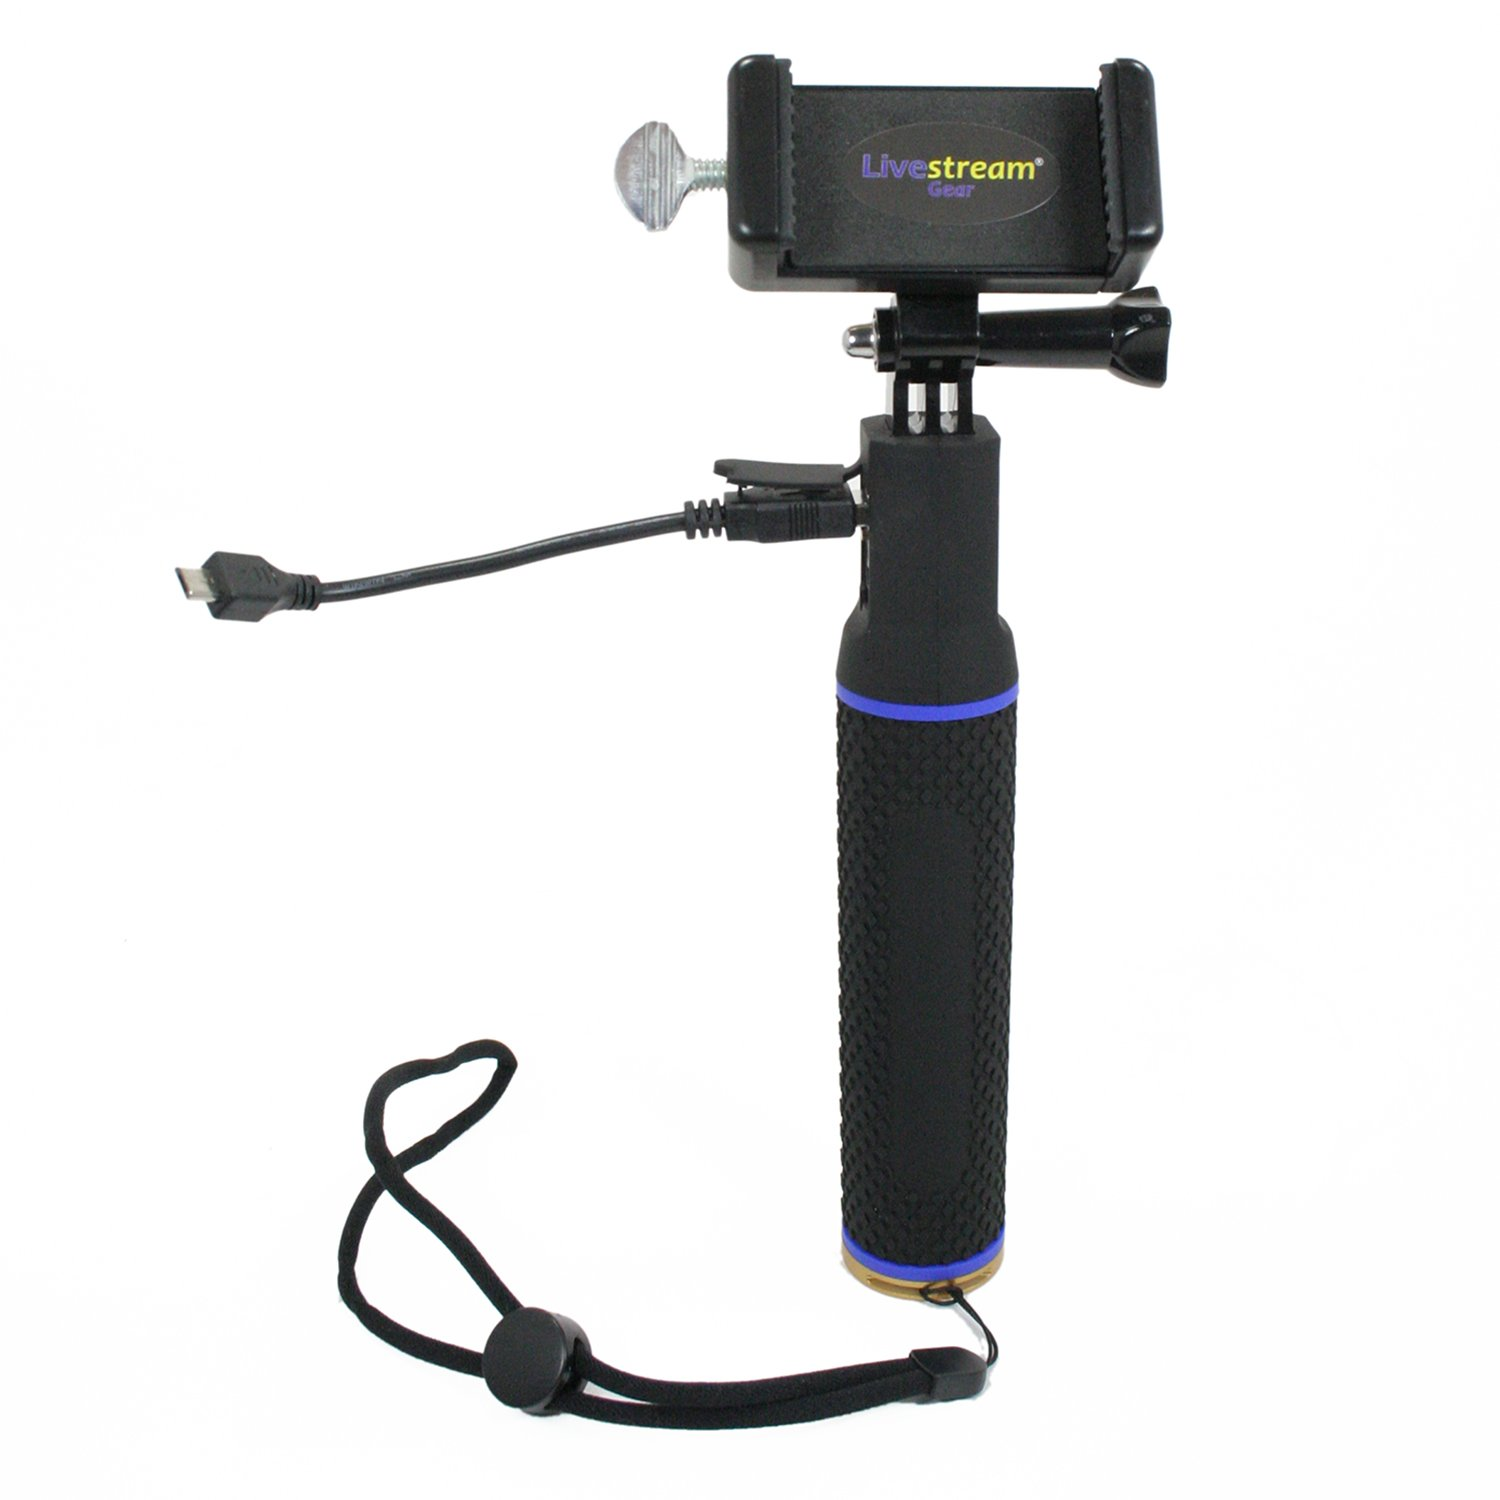 Livestream Gear - Battery Hand Grip for Streaming/Video - Any Phone. Get 3X The Film with 5200 mAh Battery Grip. Two Device Mounts (md & lg) - Works w/Sport Cameras. (Battery Grip Setup)